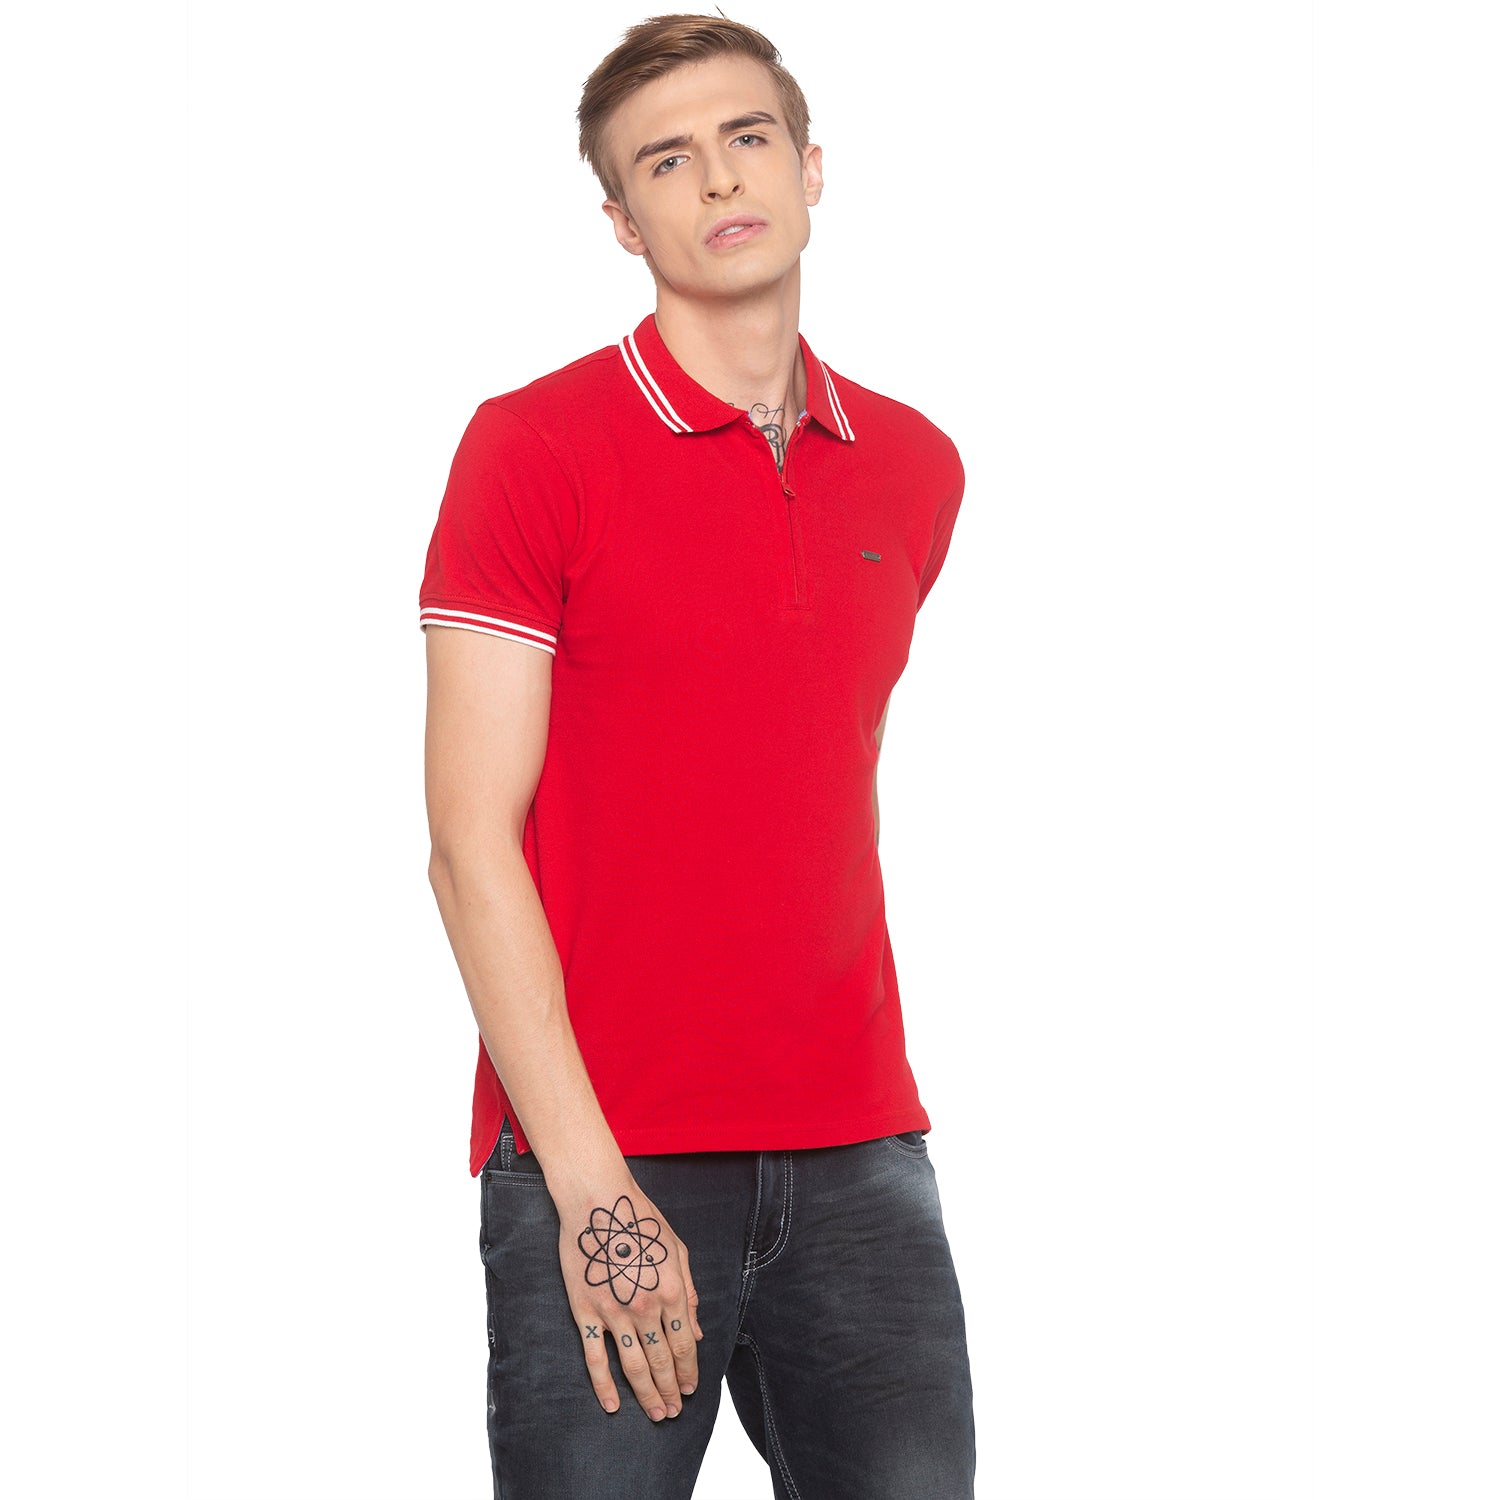 Zipper Polo Neck Solid Red T-shirt-1